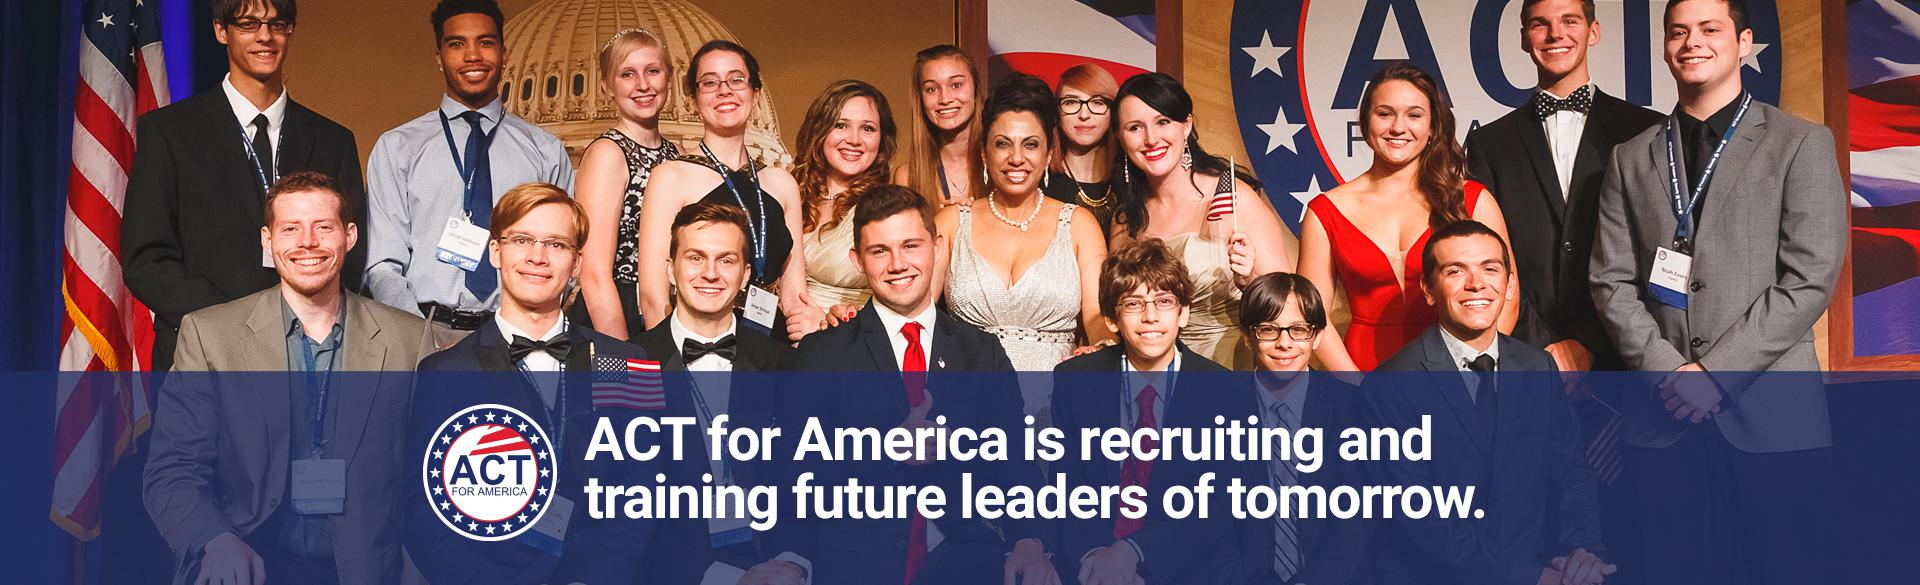 Youth- future leaders